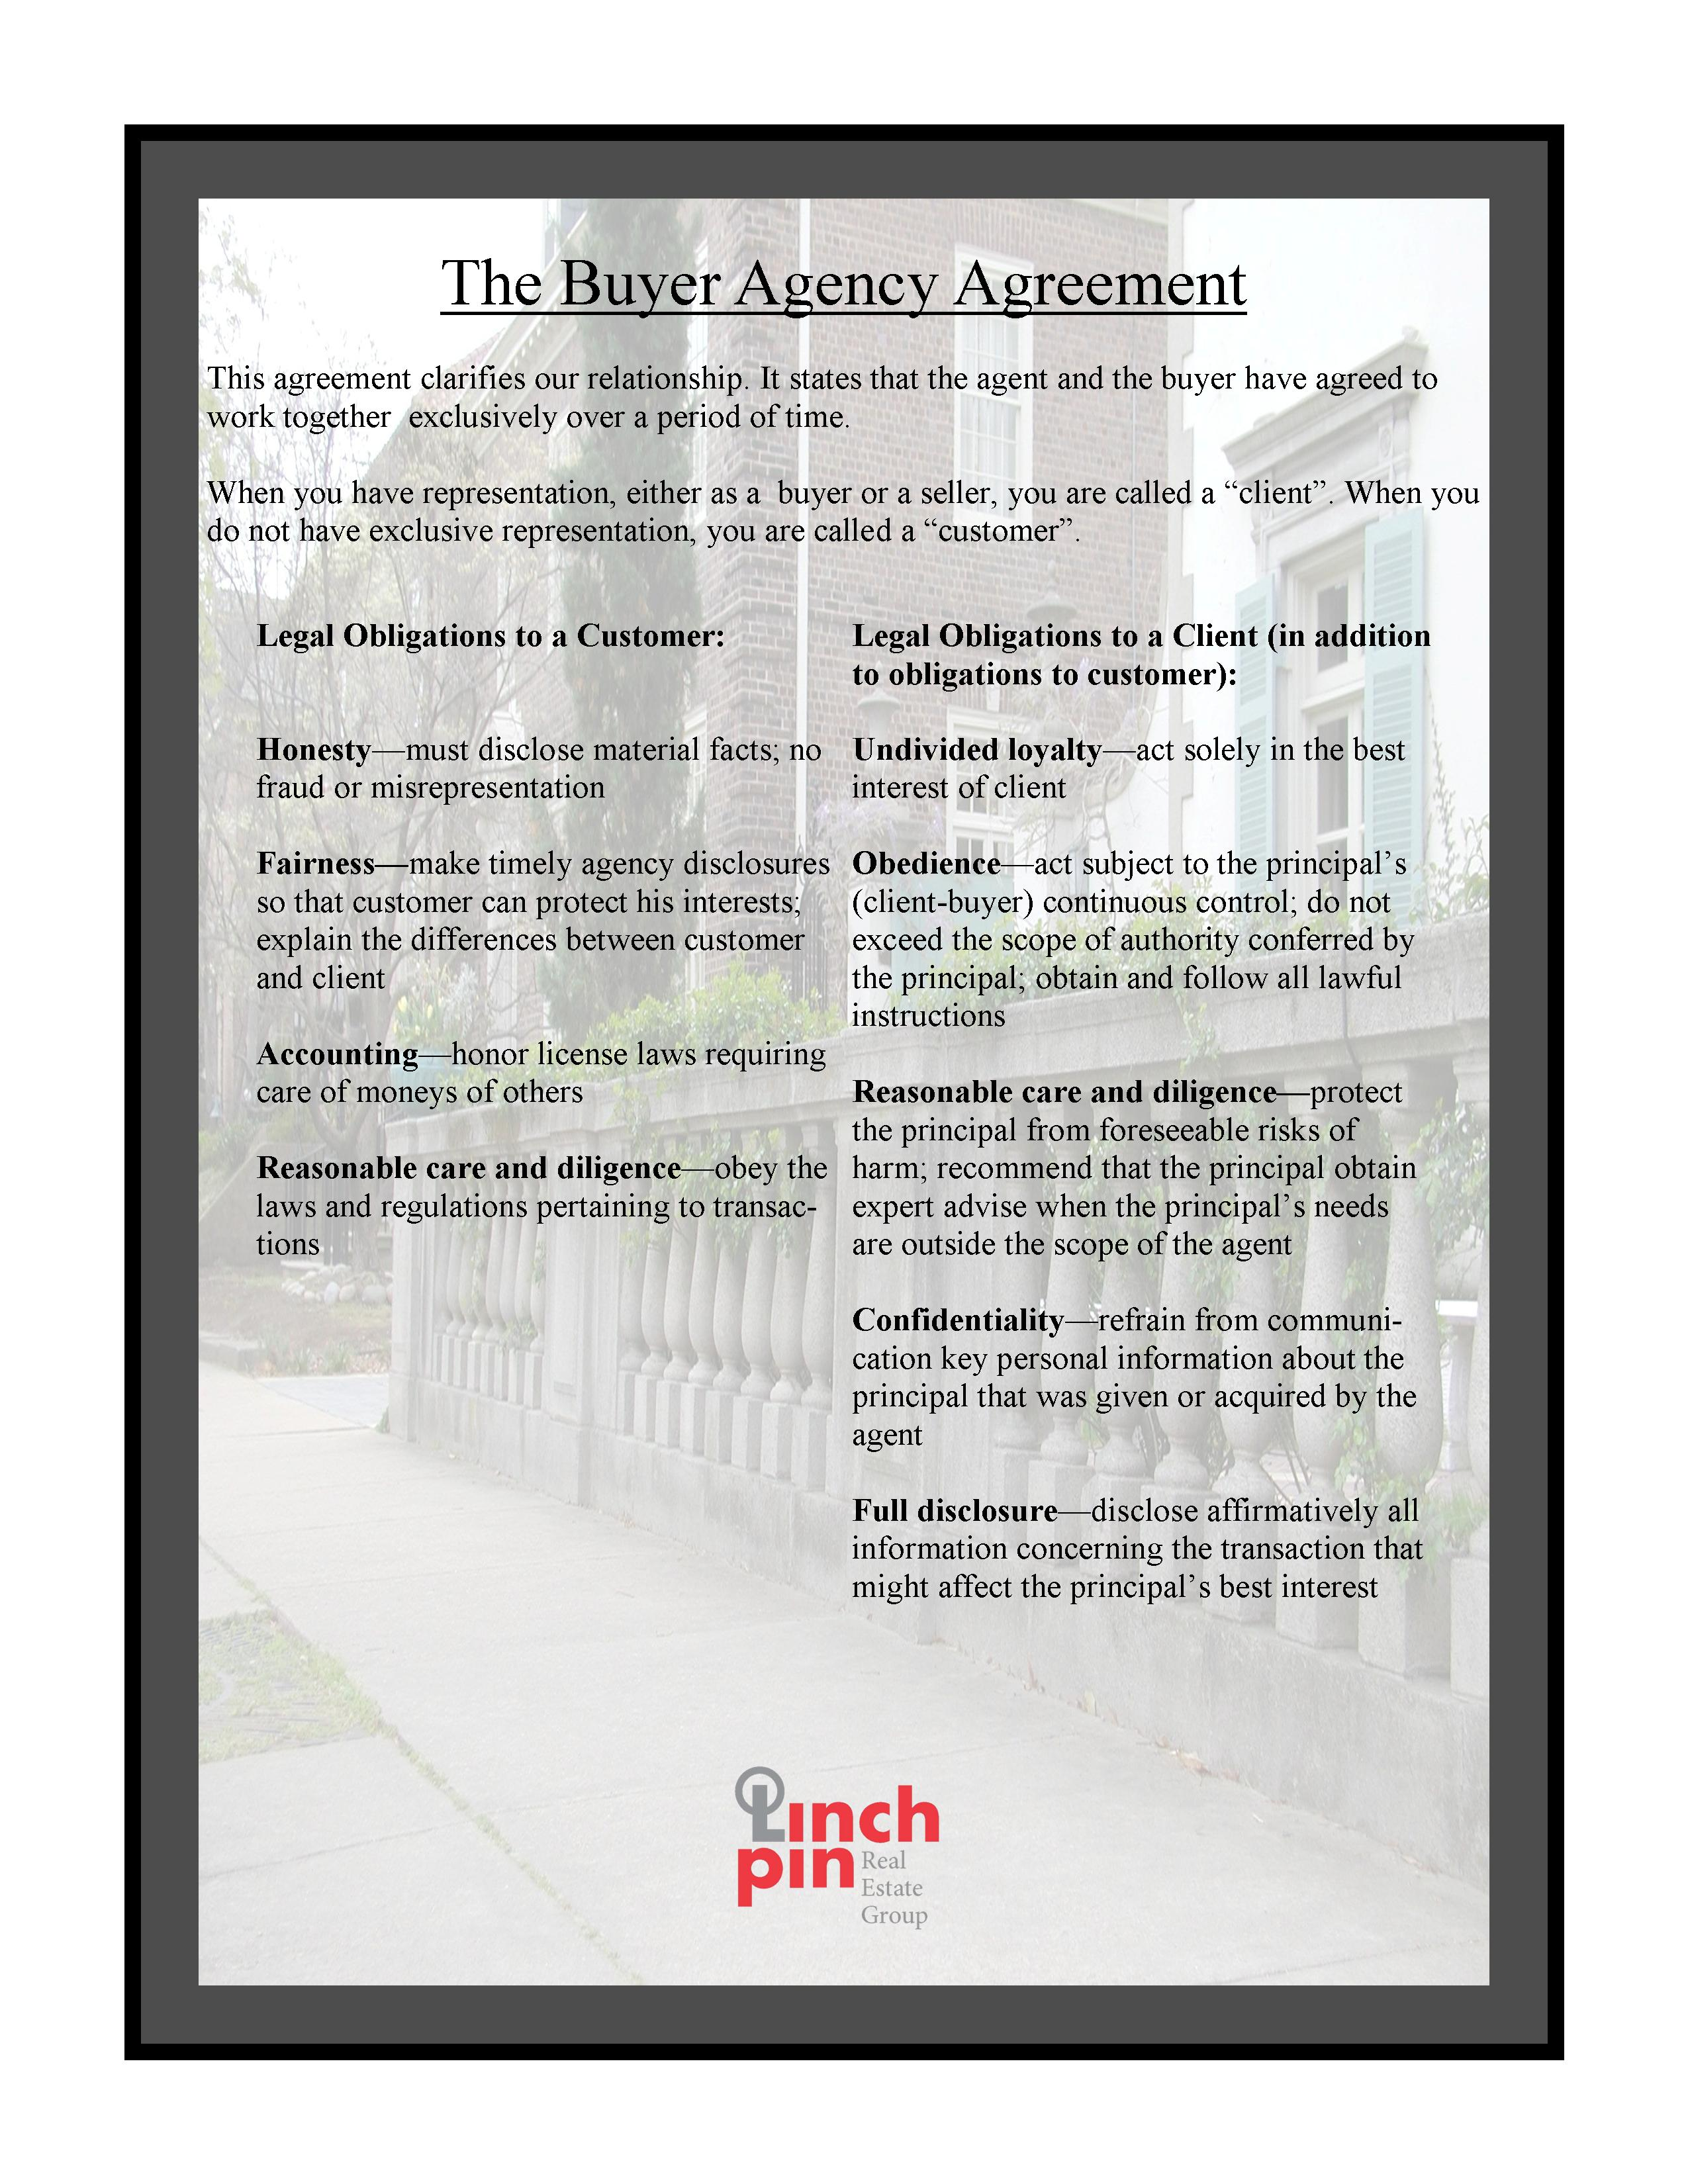 How Does A Buyers Agency Agreement Benefit You Linchpin Real